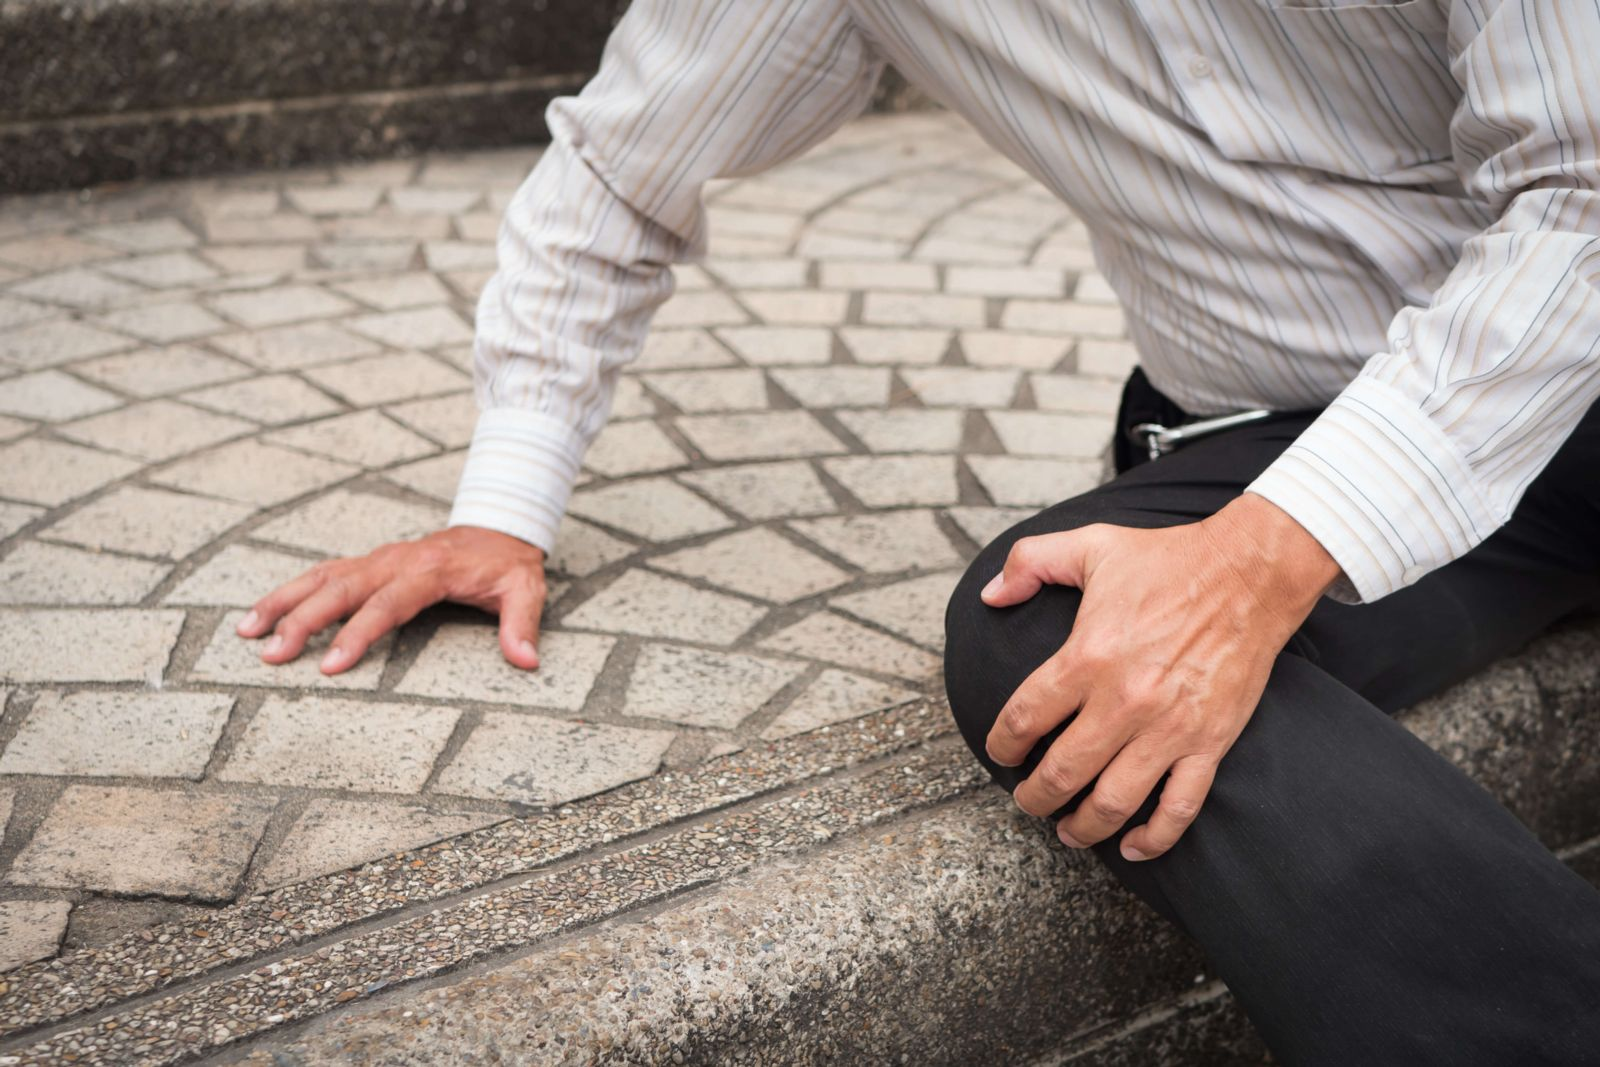 Slip and Fall Accident Lawsuits